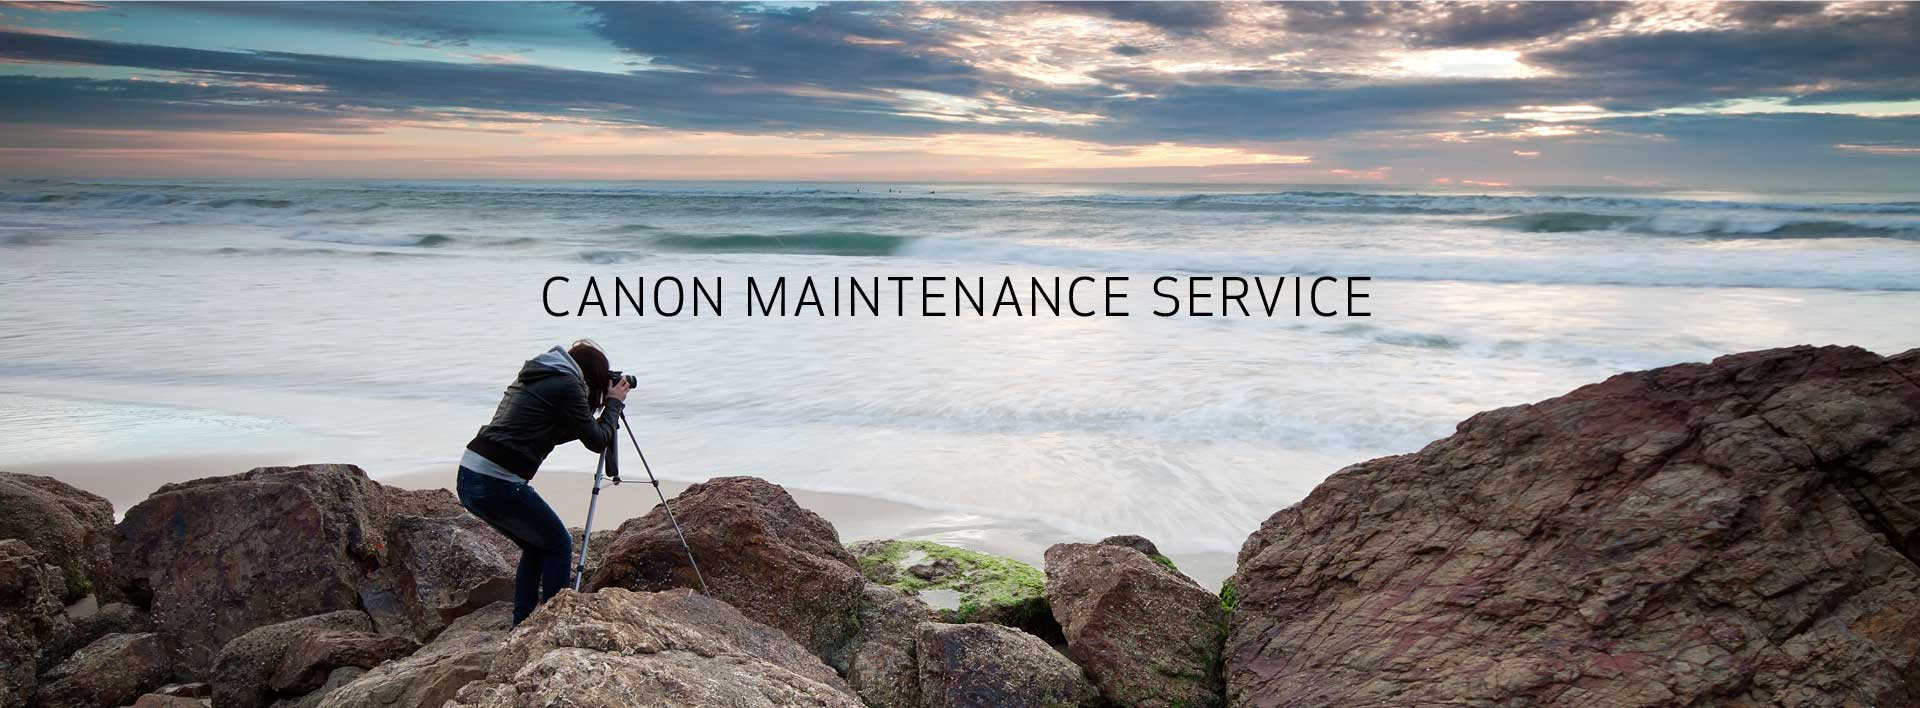 Canon Maintenance Service